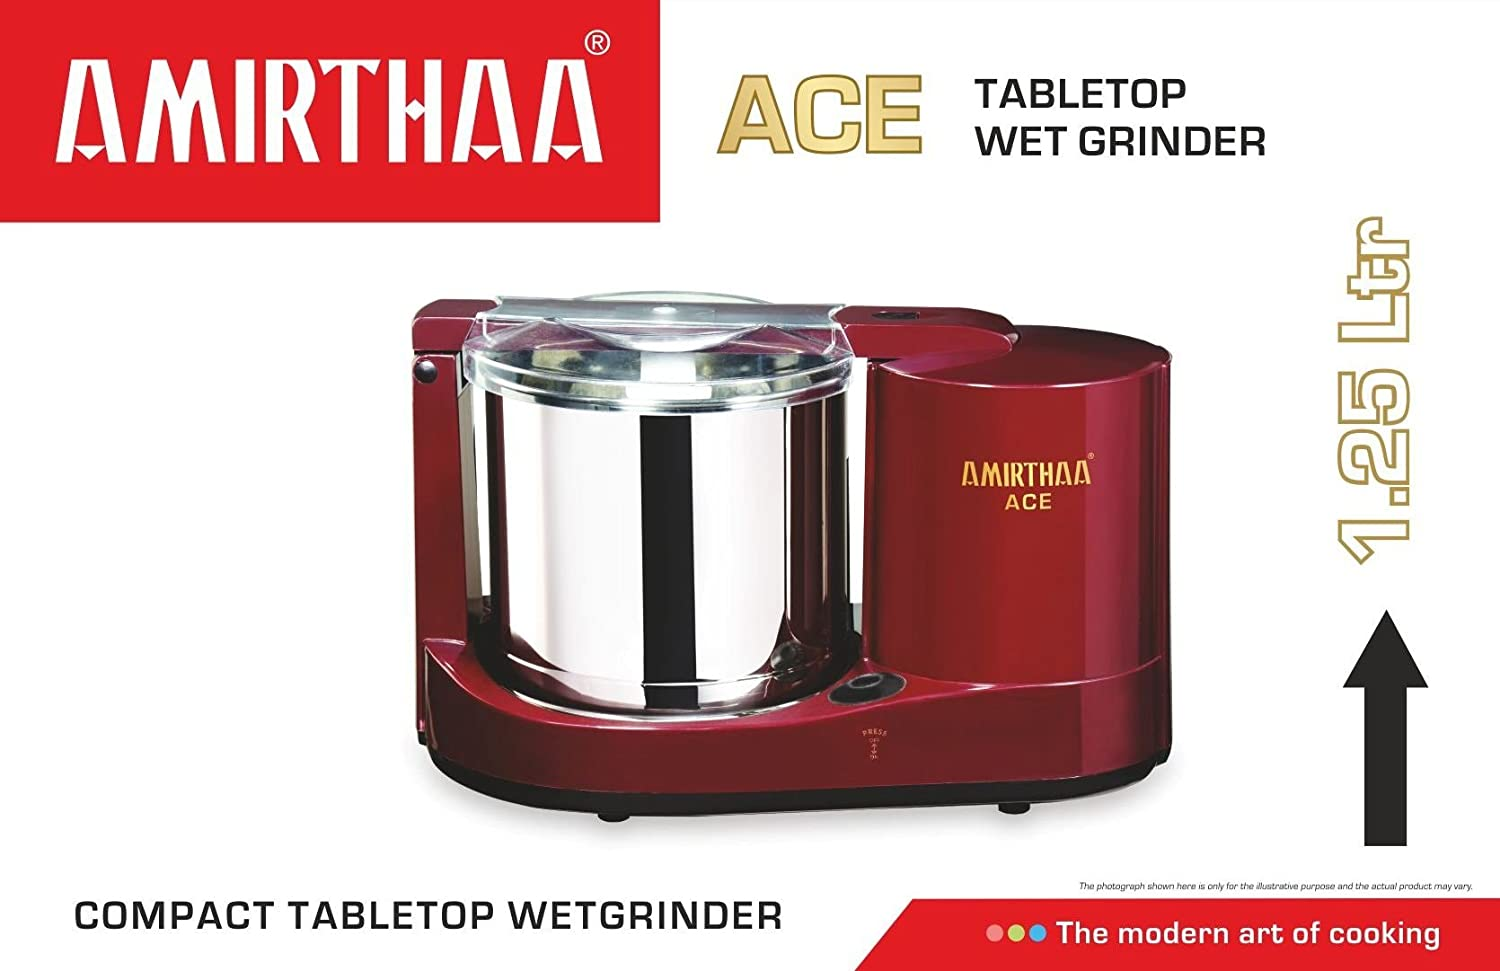 Amirthaa ACE-230V Table Top Wet Grinder, 1 25L(Red, AM_103)